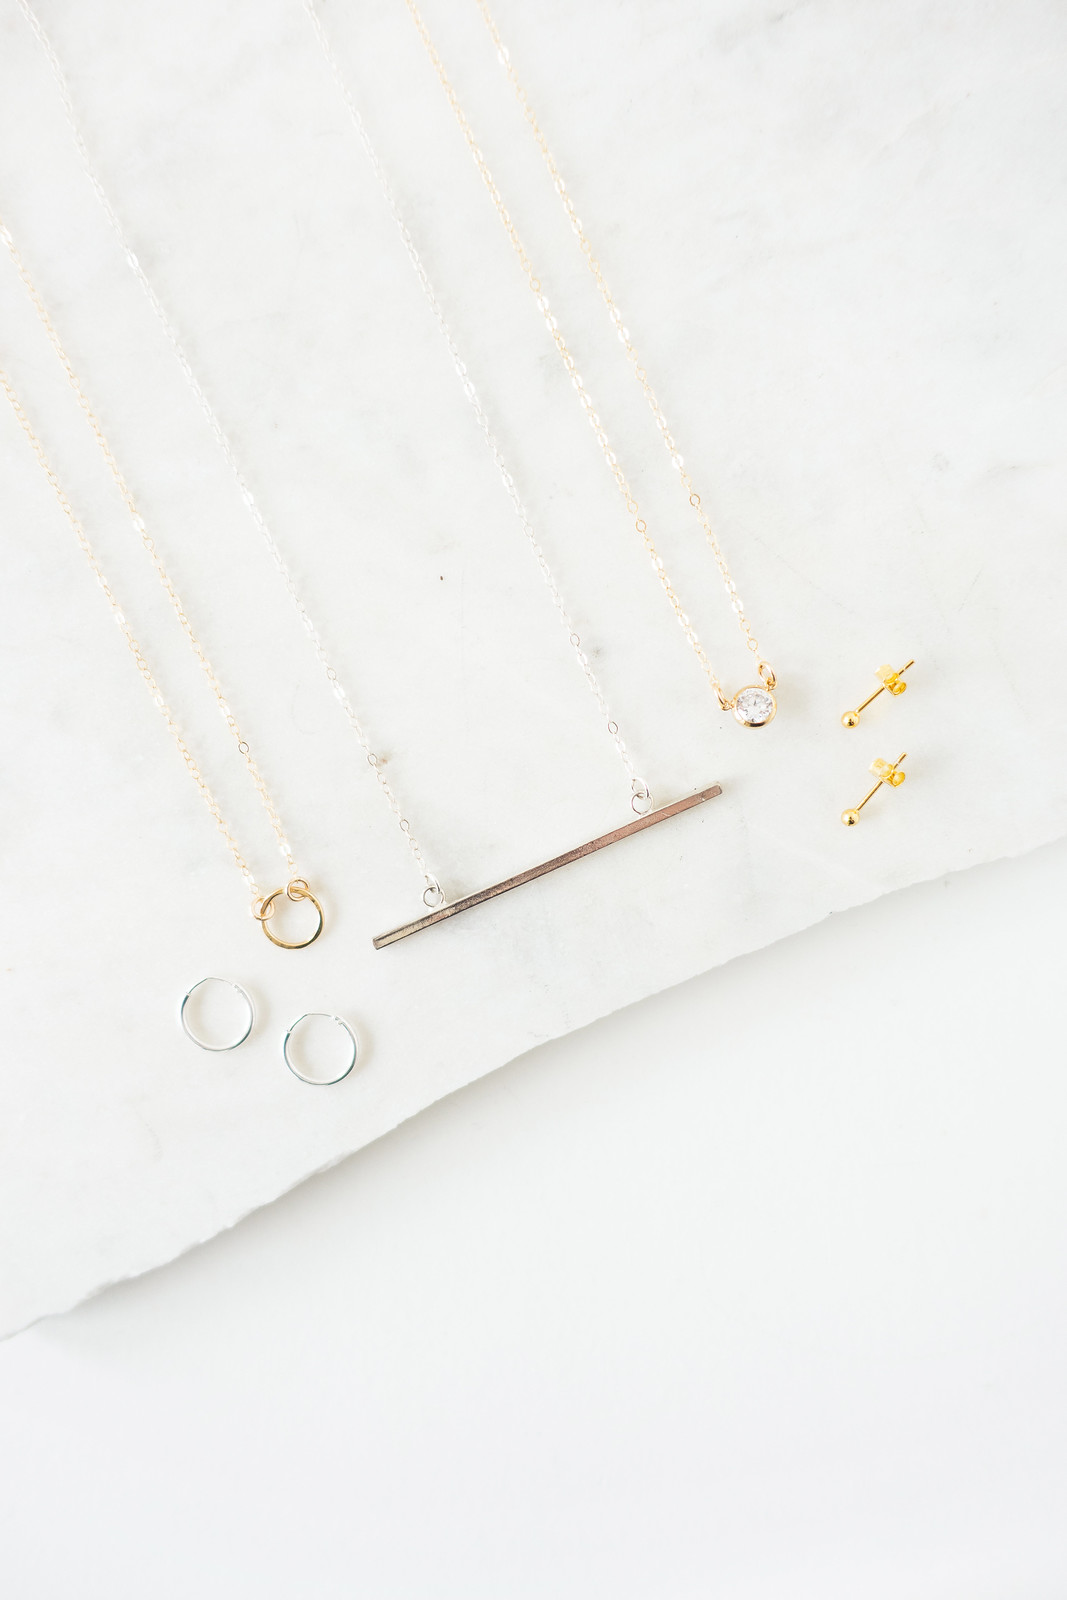 Minimal Basic Jewellery Essentials